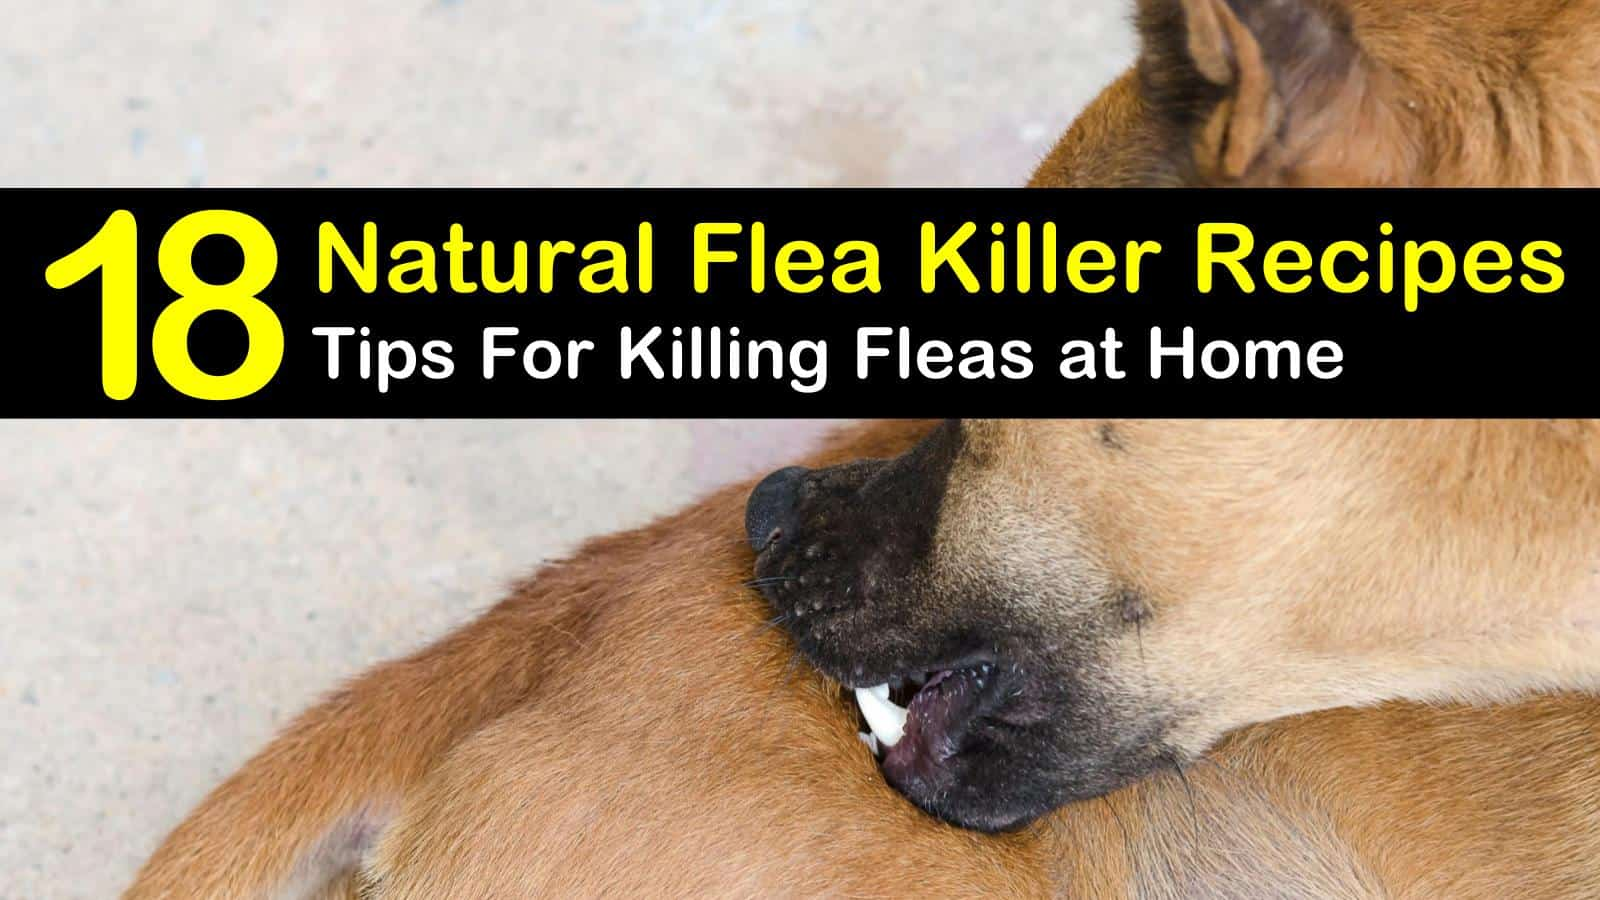 Natural Flea Killer Recipes 18 Tips For Killing Fleas At Home